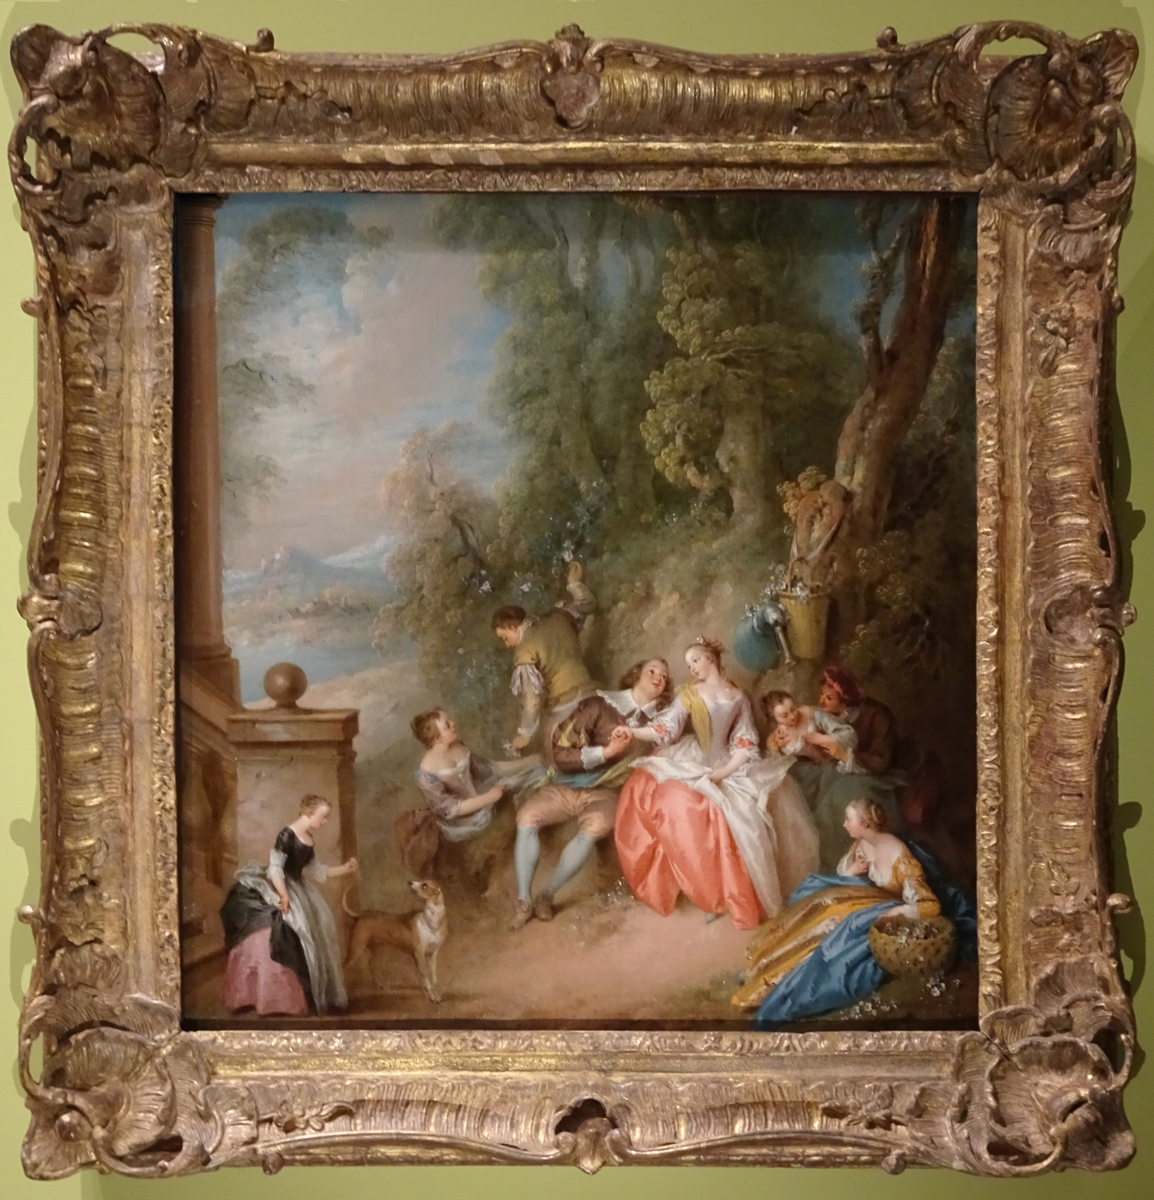 The Baroque Galleries at the V & A: Frames | The Frame Blog